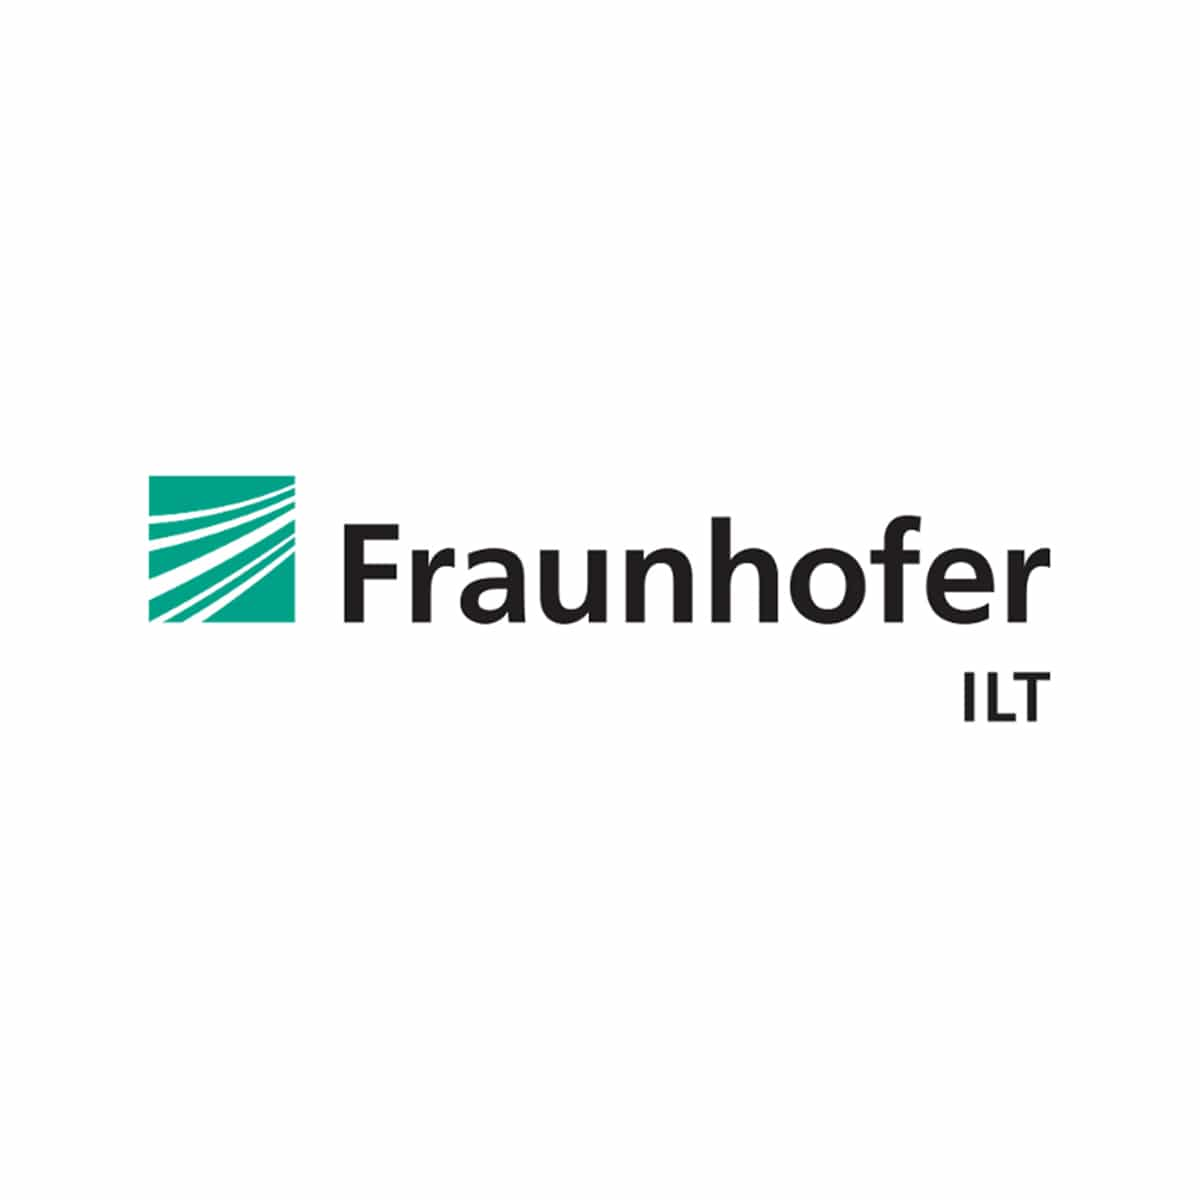 Ushio Europe and Fraunhofer ILT Collaborated With Excimer